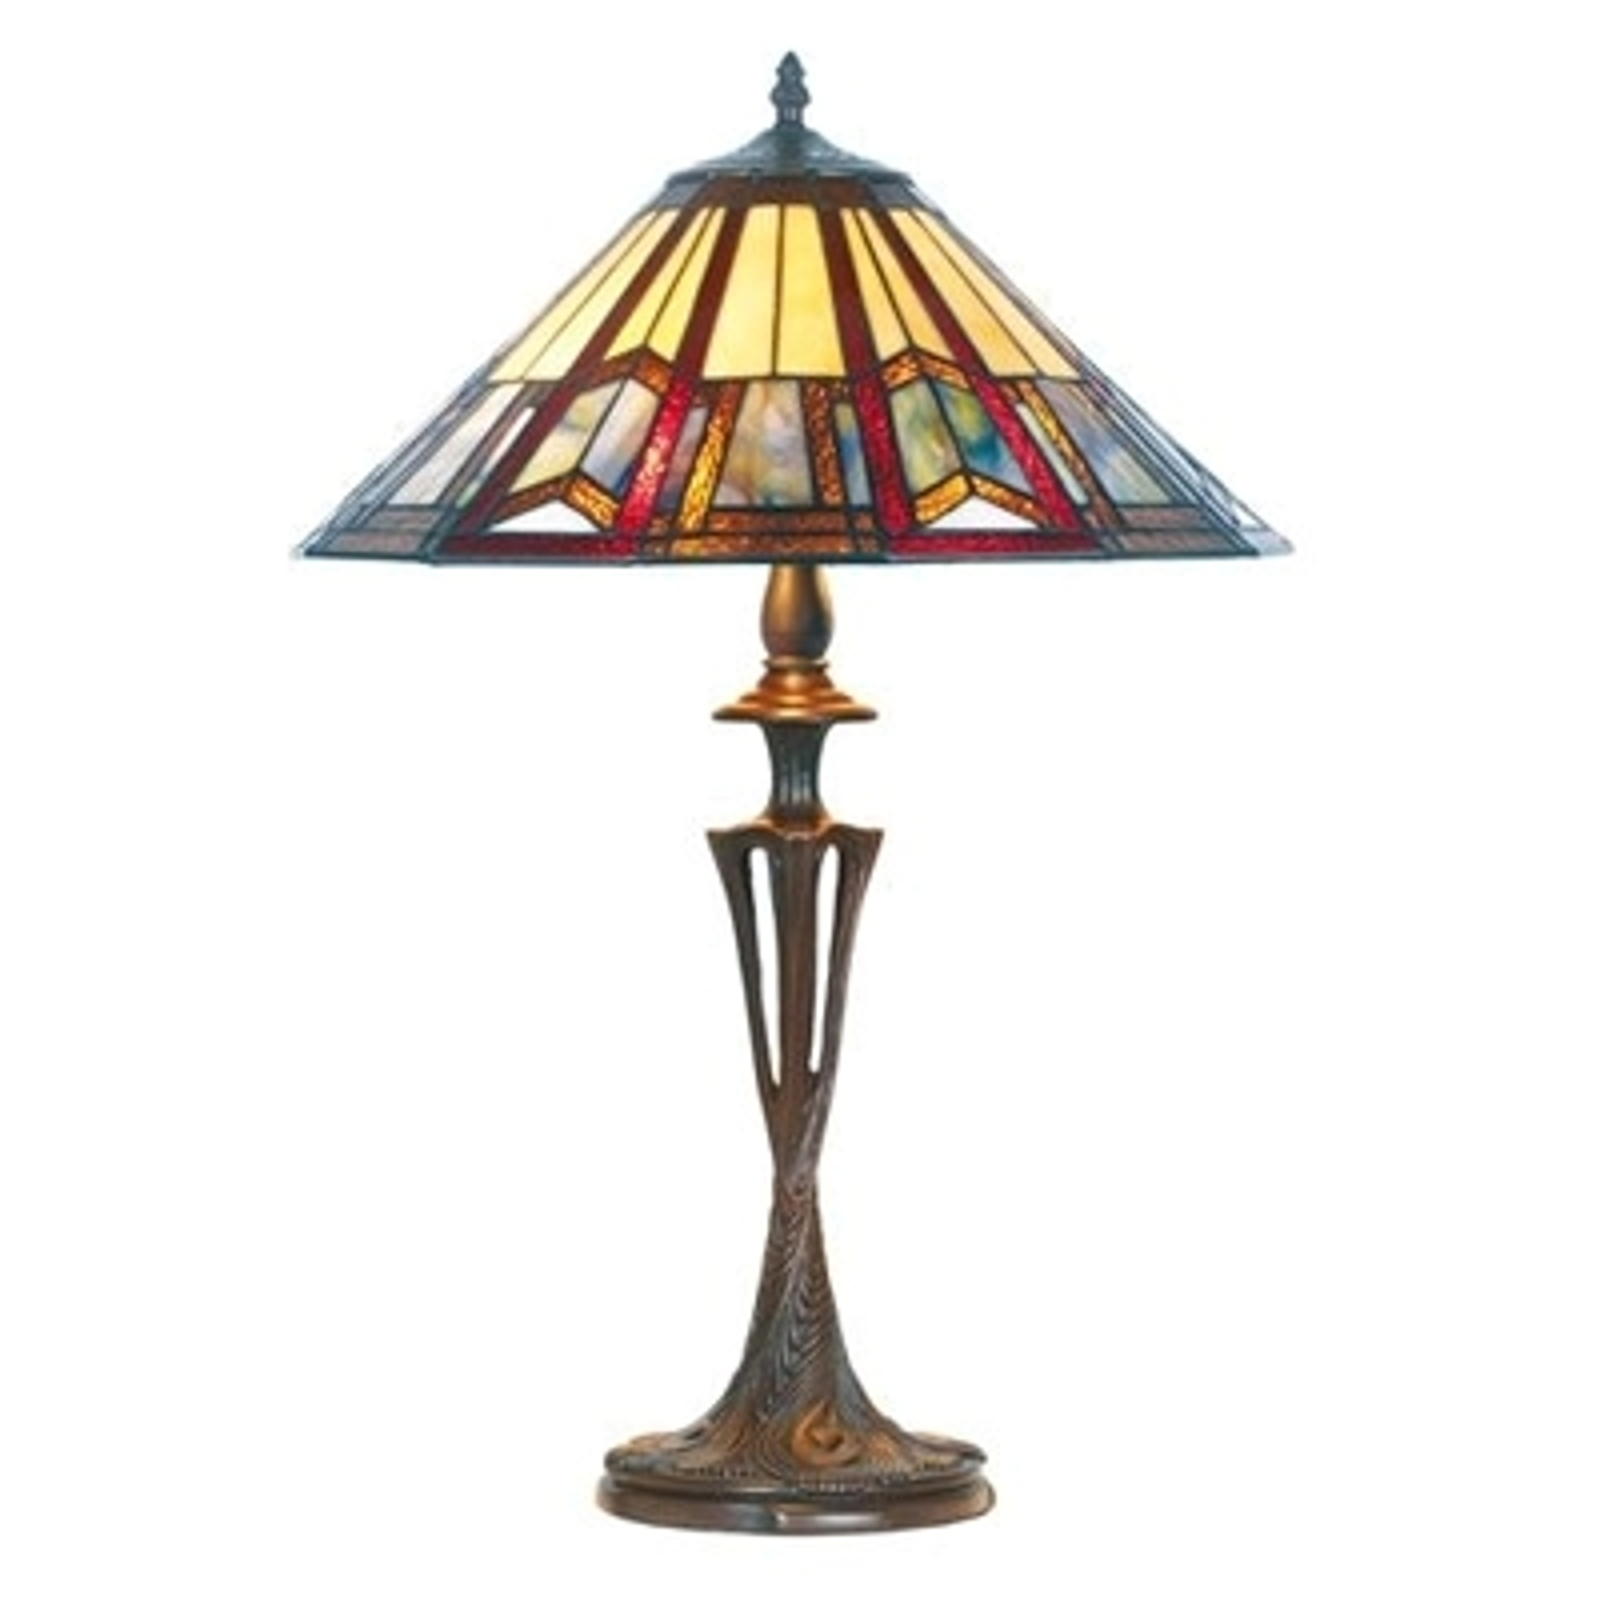 Tiffany style table lamp Lillie_1032185_1